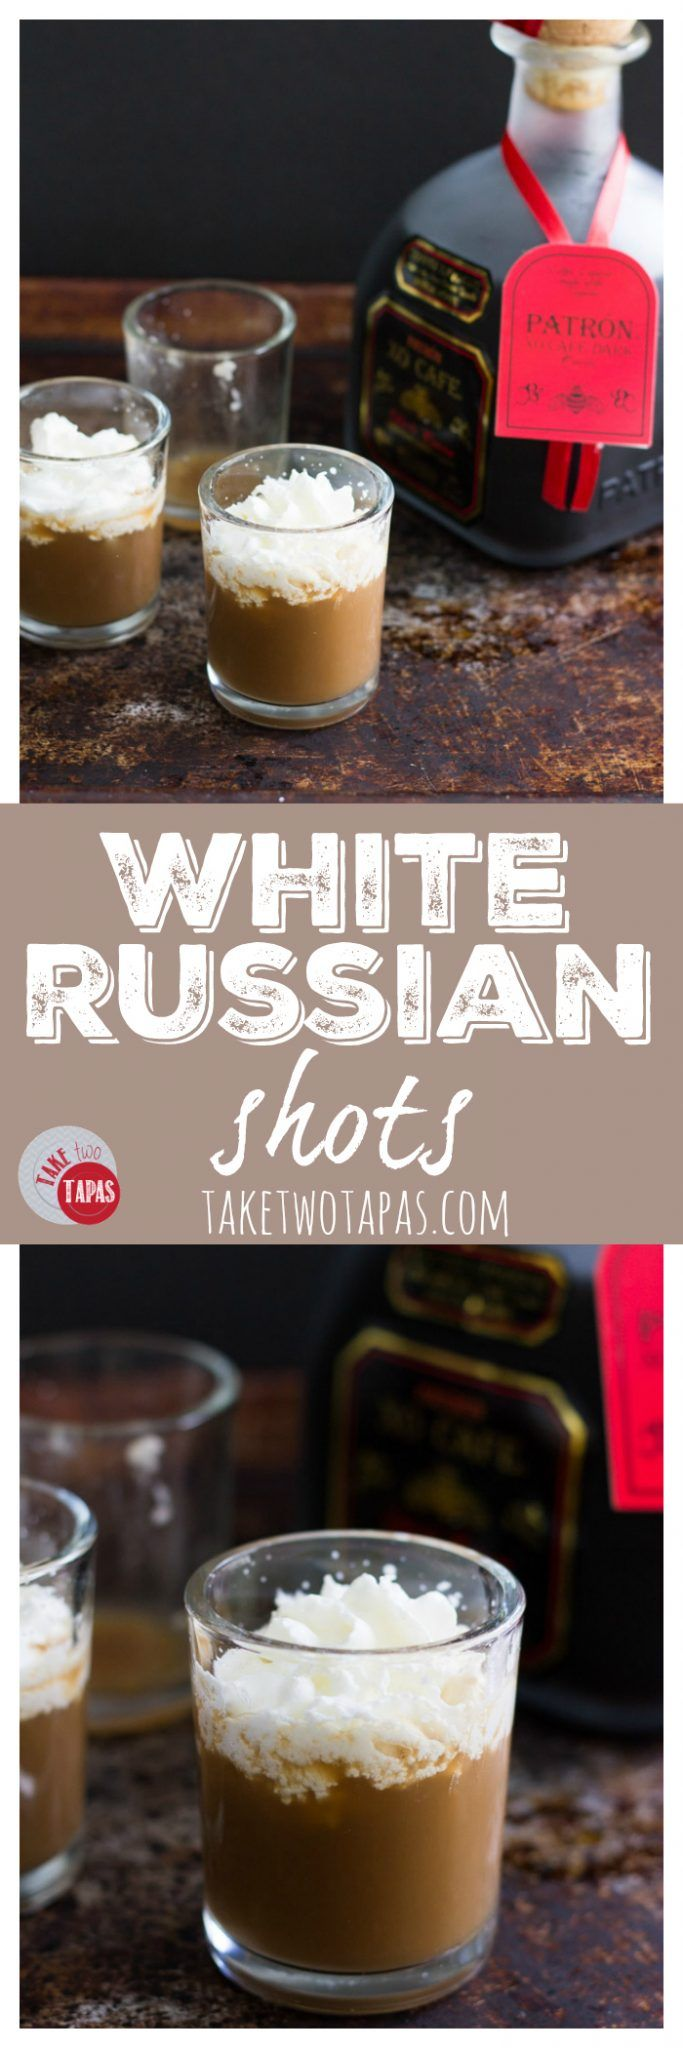 The boozy concoction known as the White Russian combines vodka, coffee liqueur for a kick, and cream to round it all out. I have taken it down in size to a shot that is perfect for a Monday Pick Me Up! White Russian Shot Recipe | Take Two Tapas